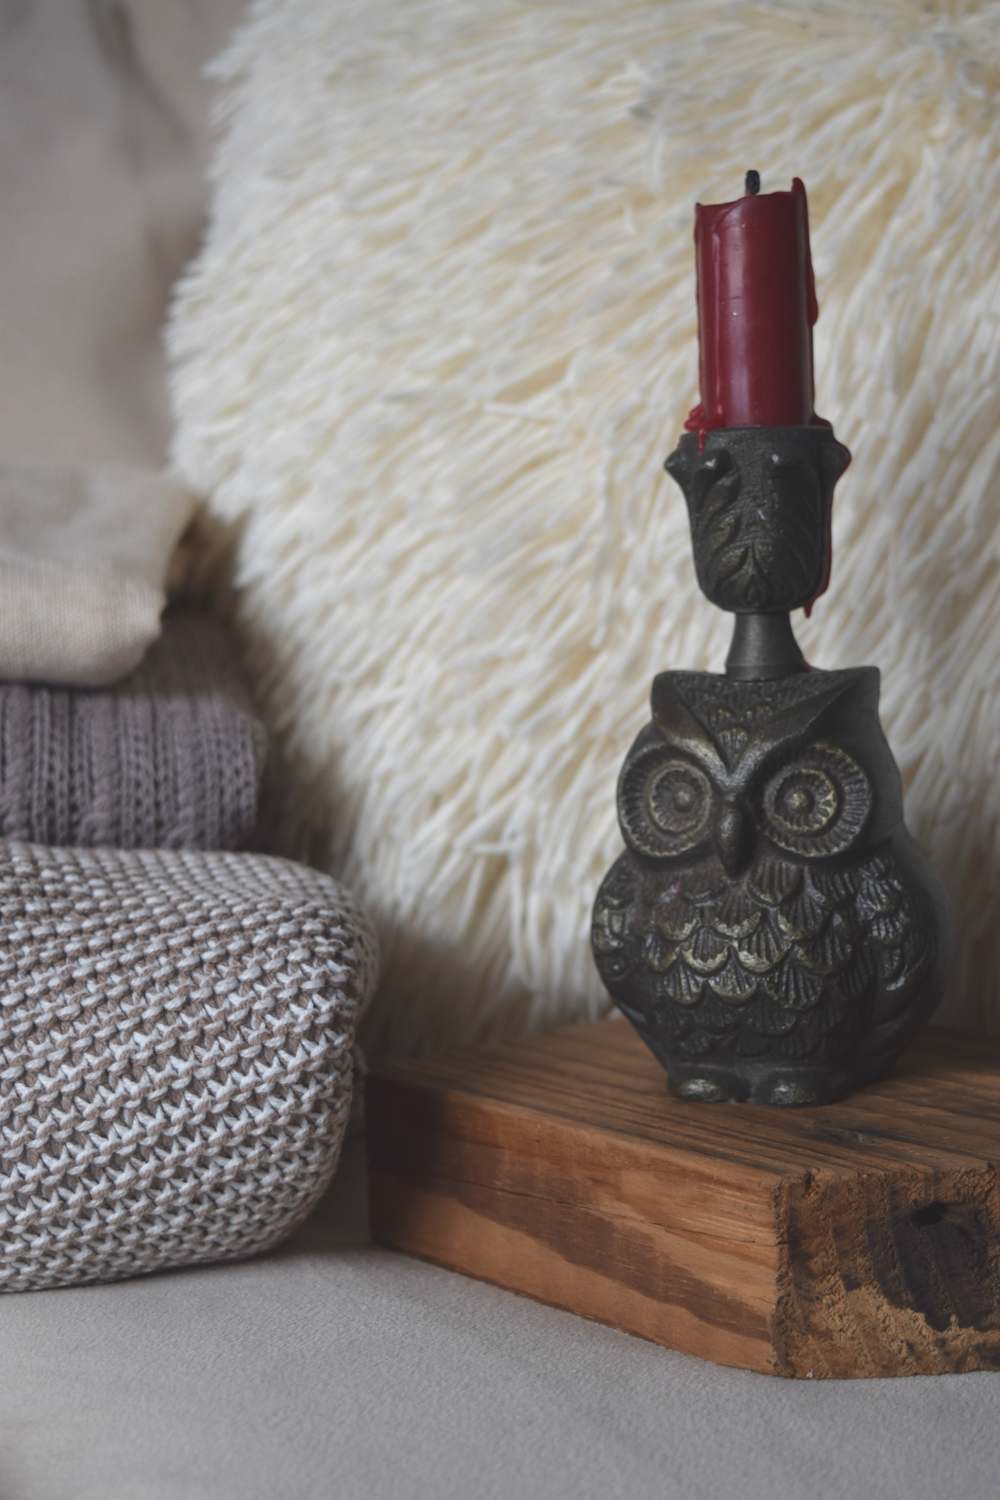 Carole Schopp Interior Decor The Little Notebook Wood Block Owl Candlestick Holder